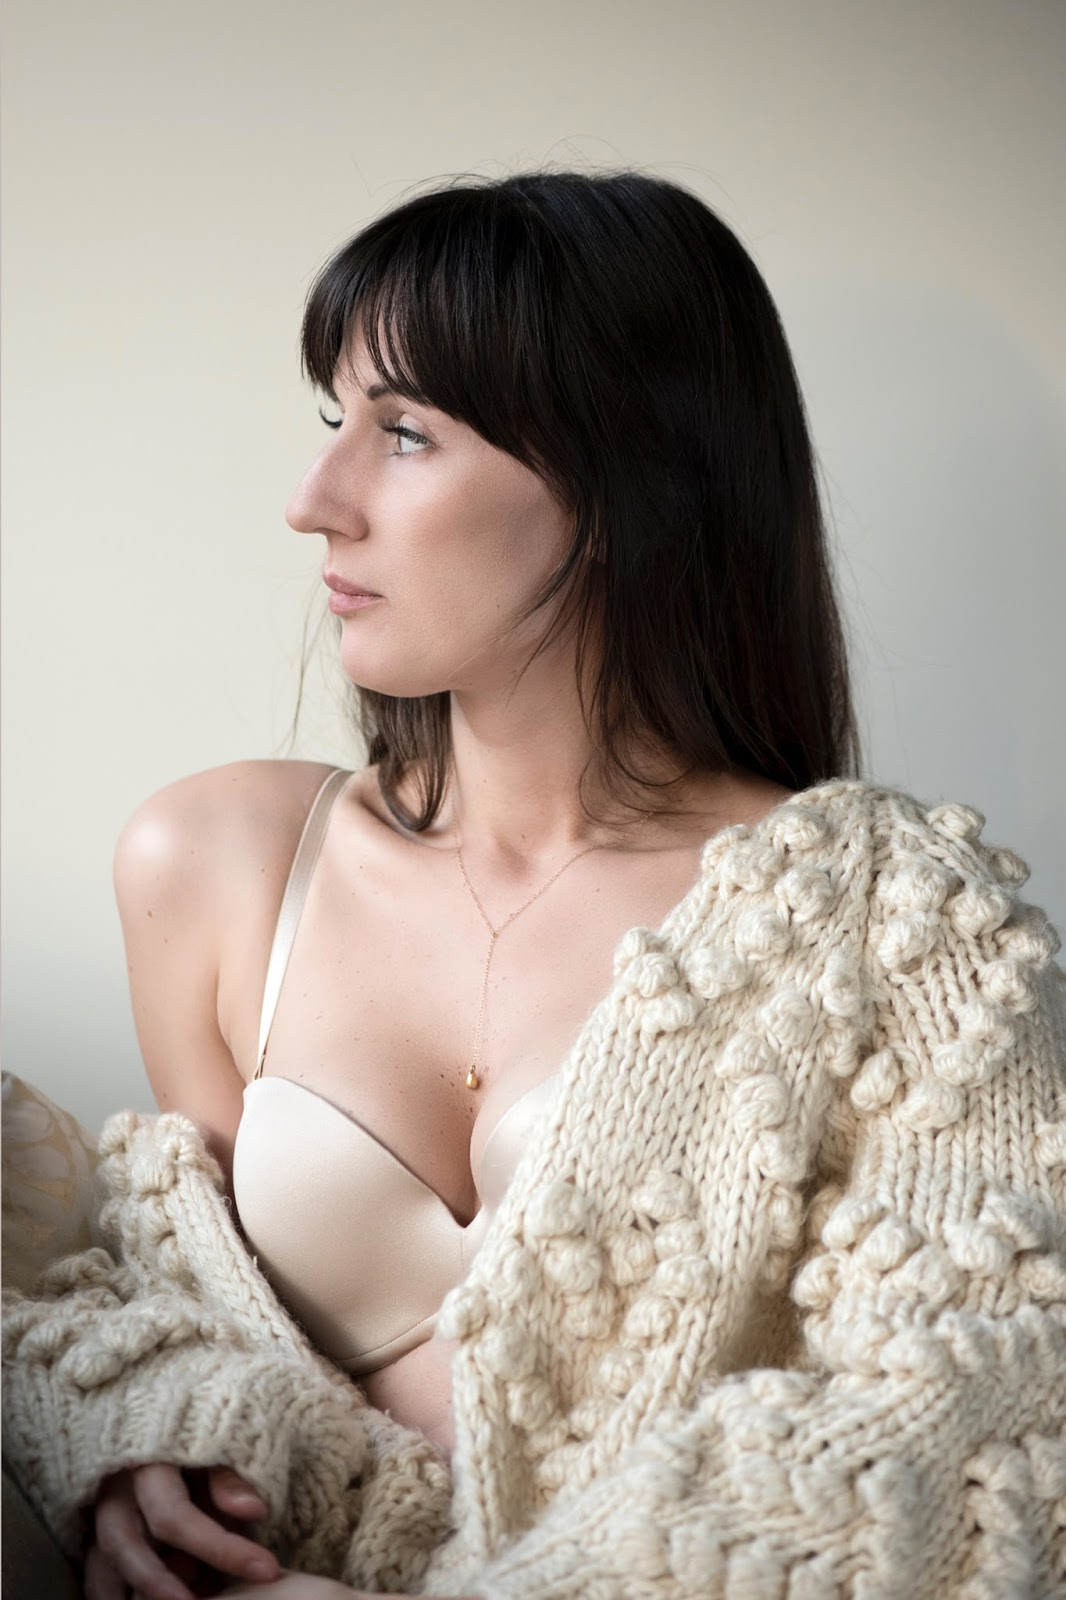 5e701c91a990e Upbra® Cleavage Enhancing bras use the new patented ActiveLift® technology  to give more cleavage to smaller cup sizes and more lift to women with  larger cup ...